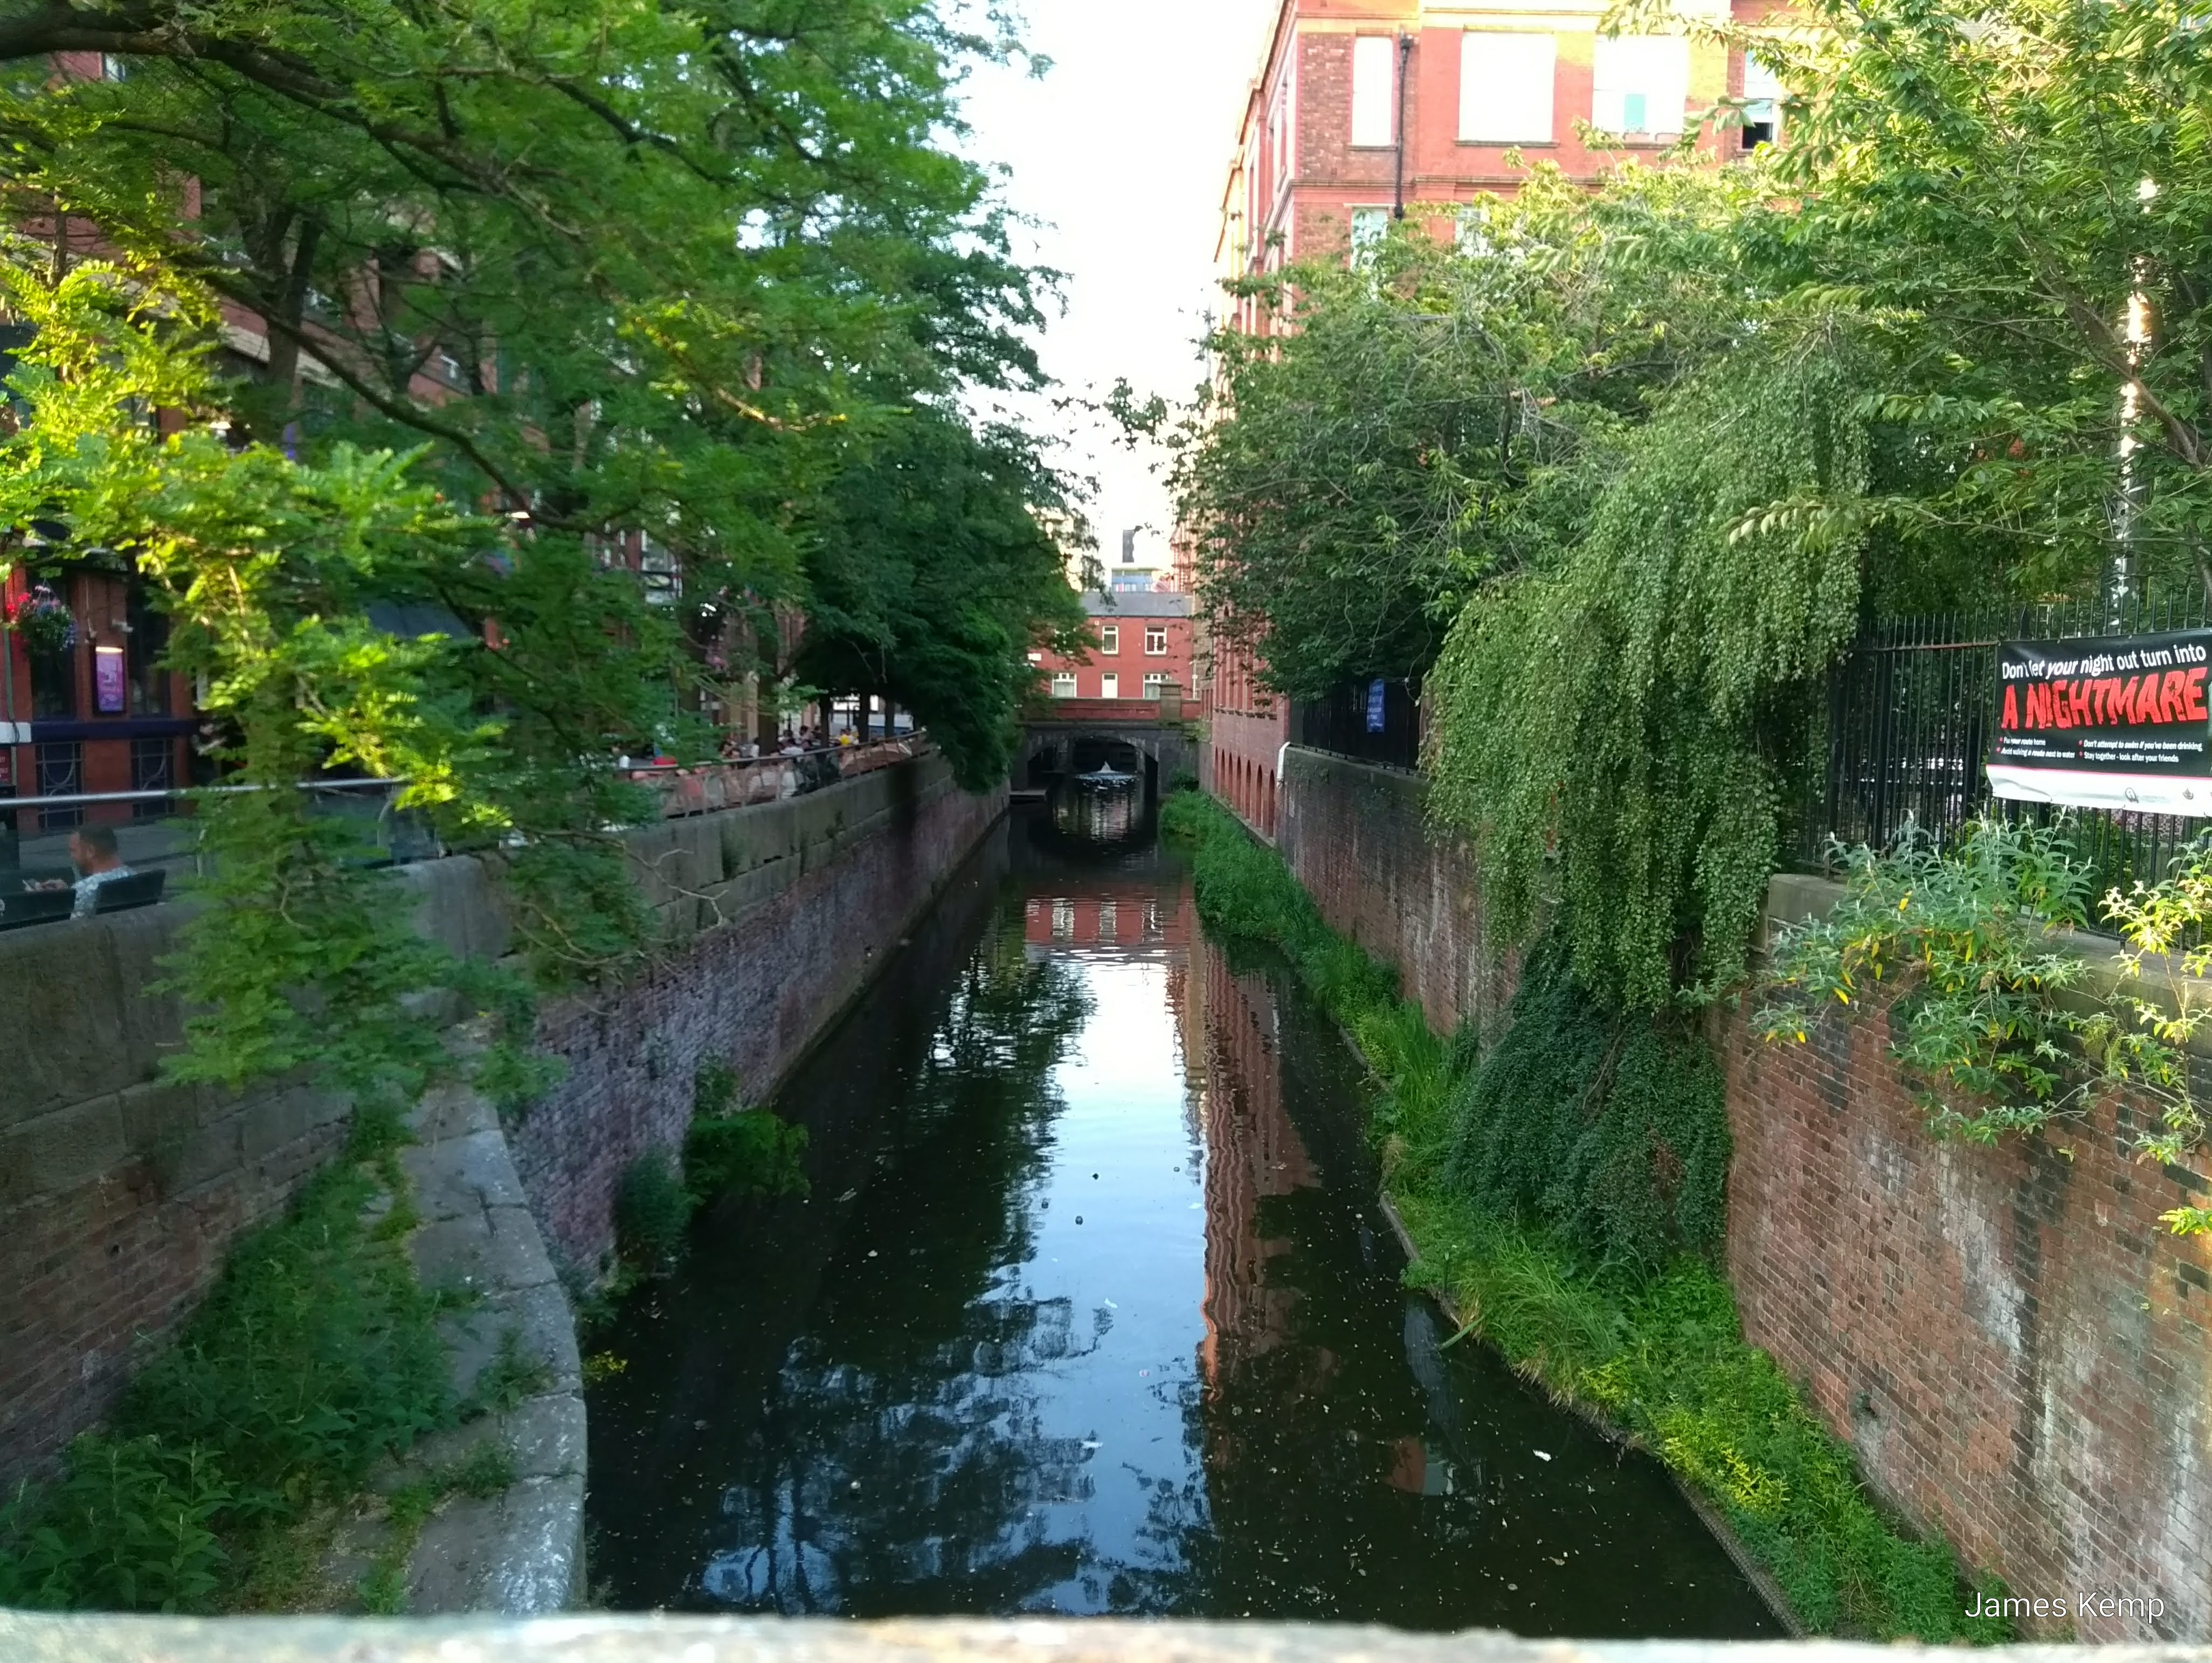 A Manchester canal, running alongside Canal Street (right) and Sackville Park (left). (Photo: James Kemp)